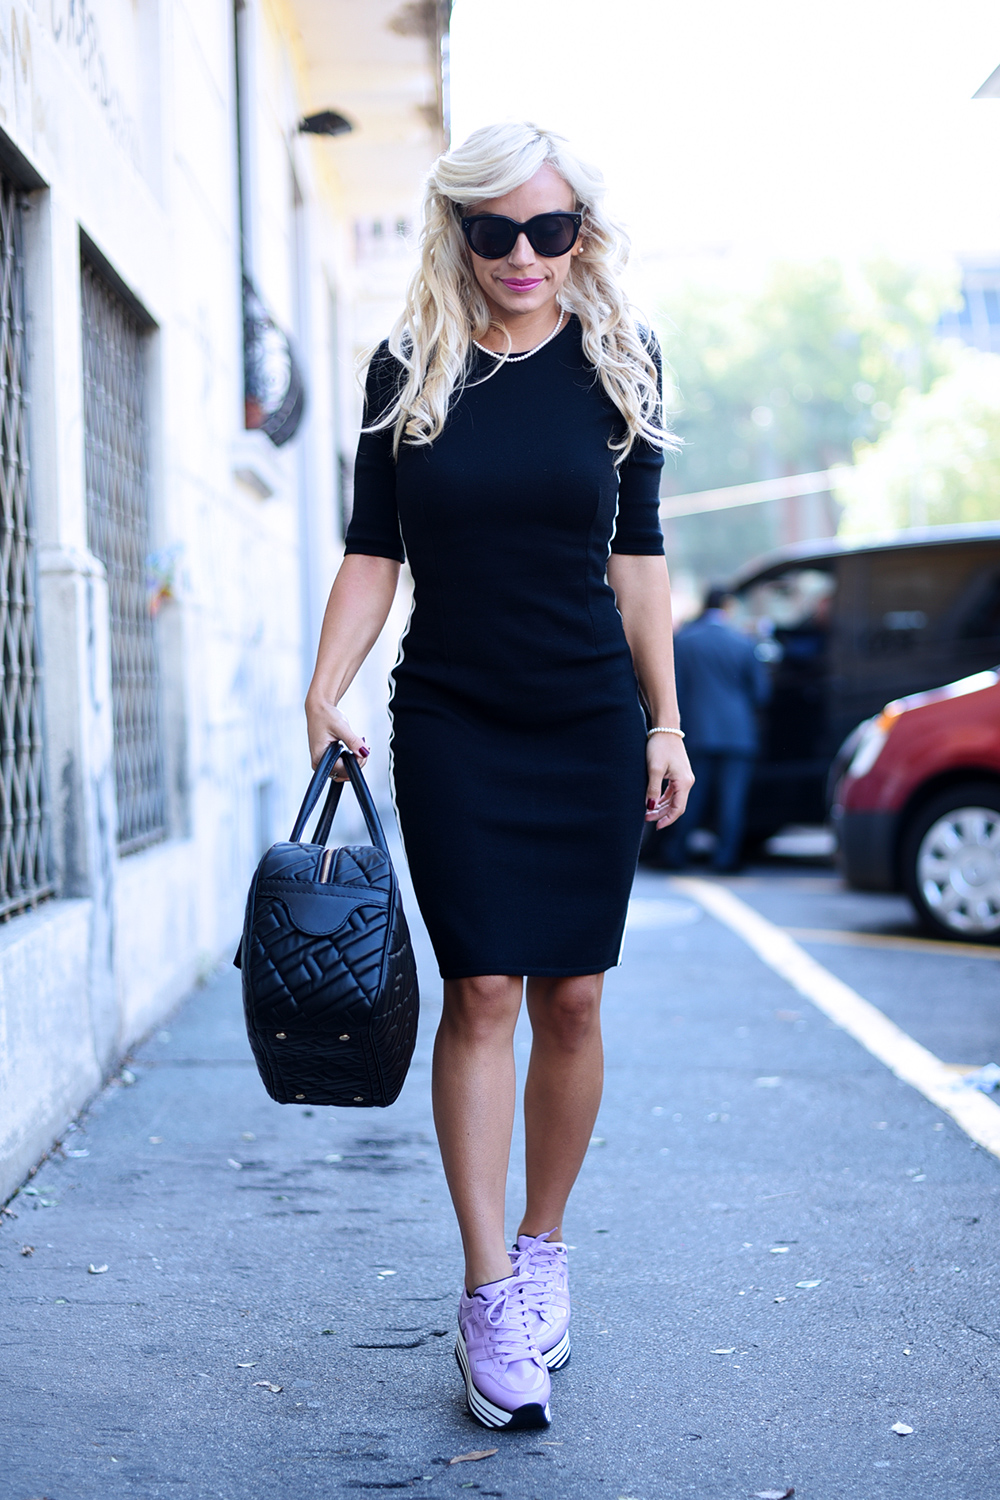 Hogan scarpe sneakers, Hogan H283, borse Hogan, how to wear a black dress, vestito con scarpe sportive da ginnastica - outfit Milan Fashion week fall 2015 It-Girl by Eleonora Petrella